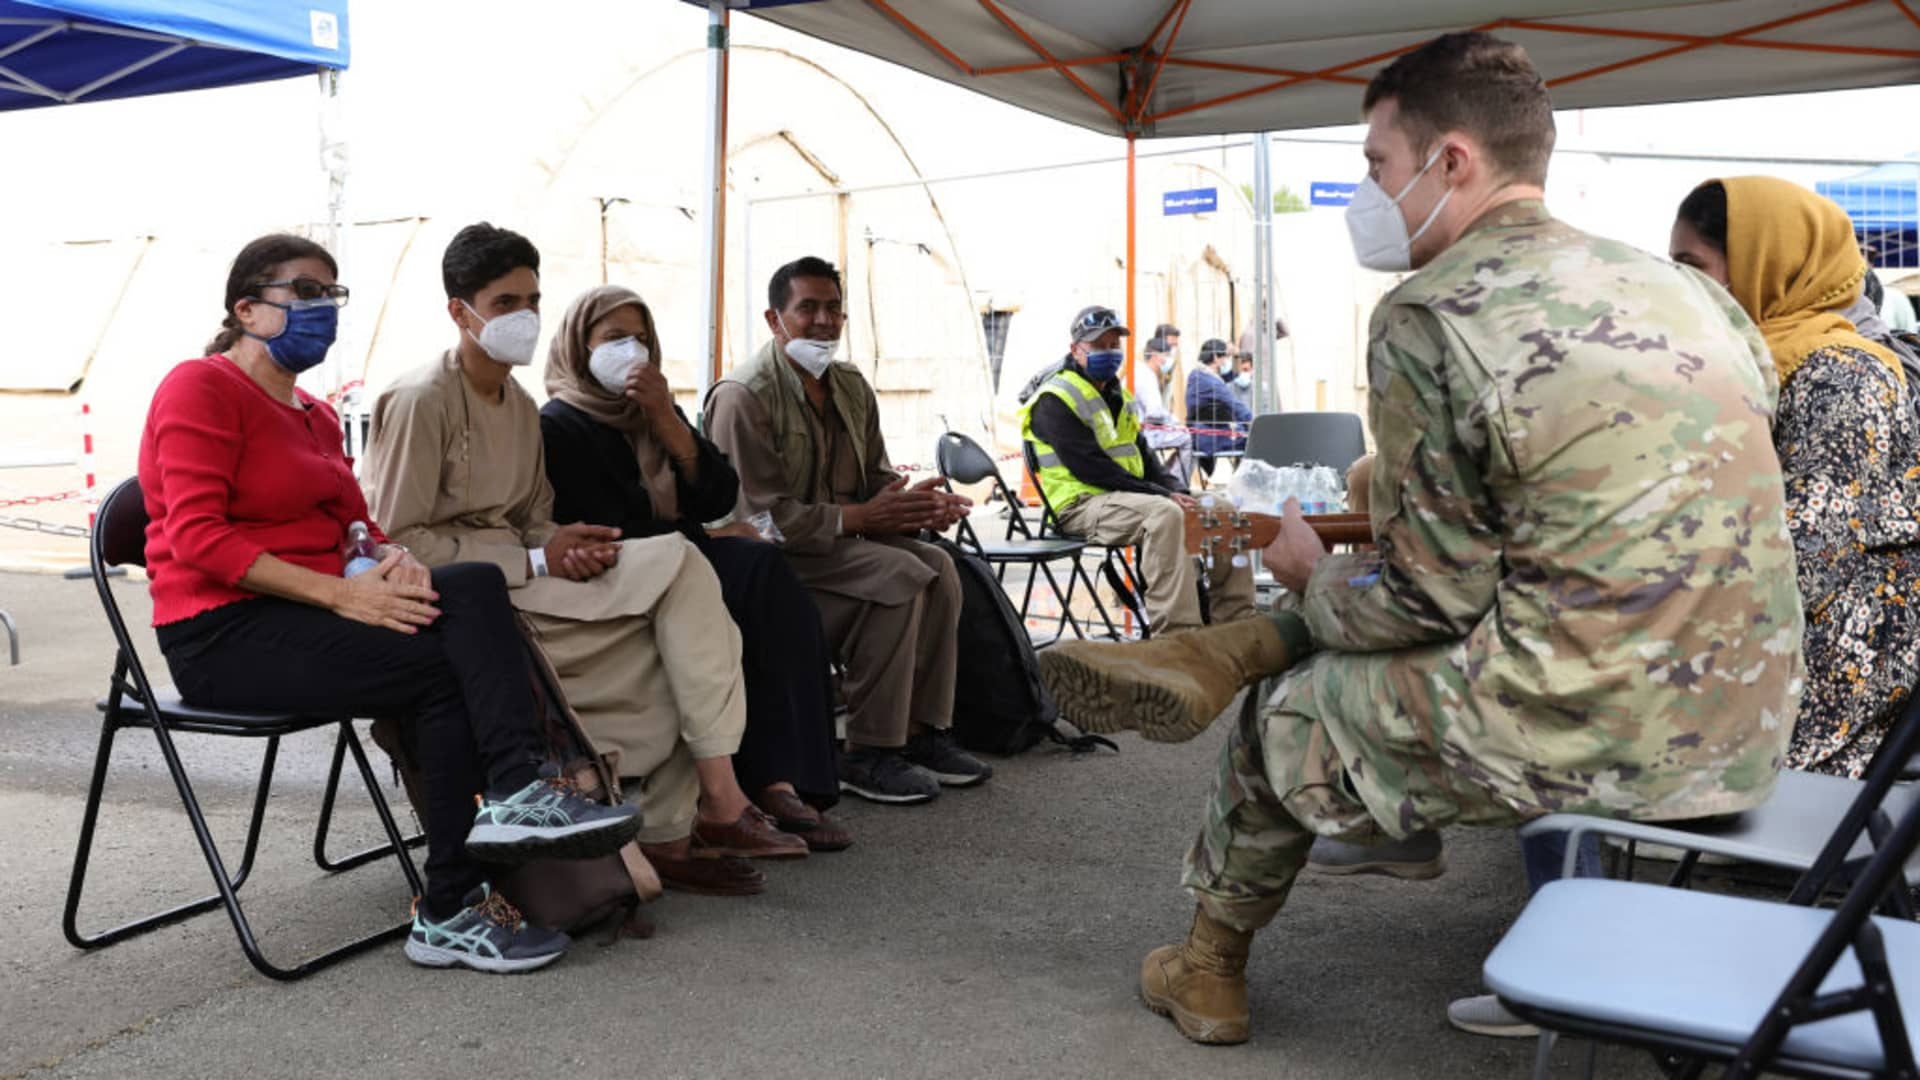 A U.S. military officer plays a ukulele for evacuees from Afghanistan at a waiting area at Ramstein Air Base in Germany on Aug. 26, 2021.